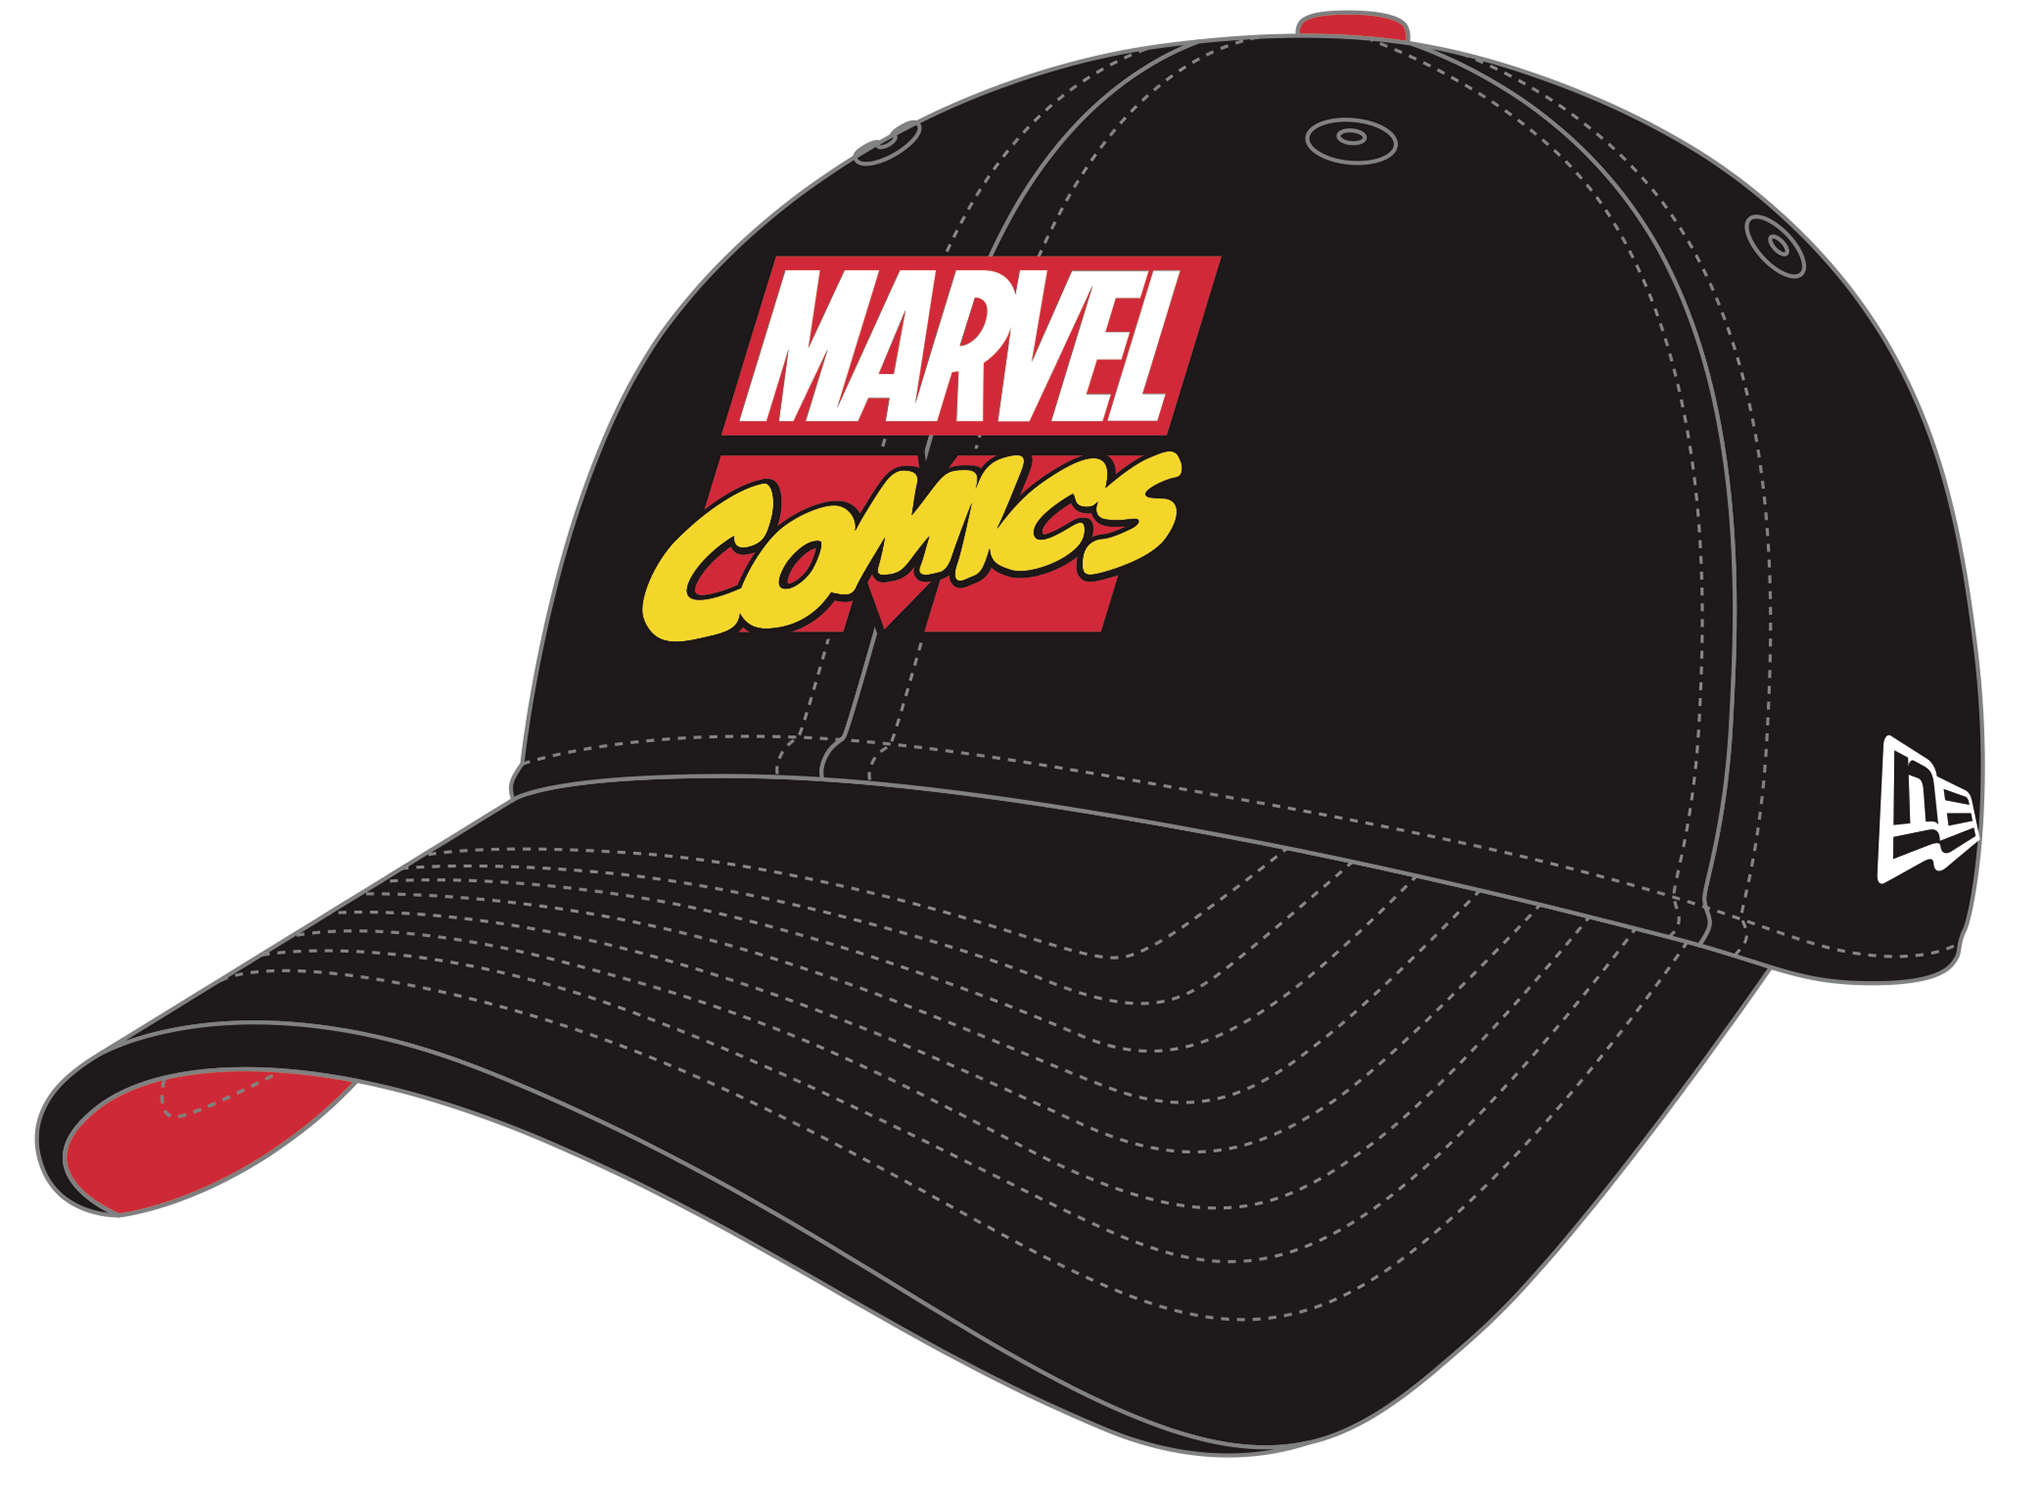 MARVEL COMICS LOGO 80TH ANNIVERSARY PX FLEXFIT CAP